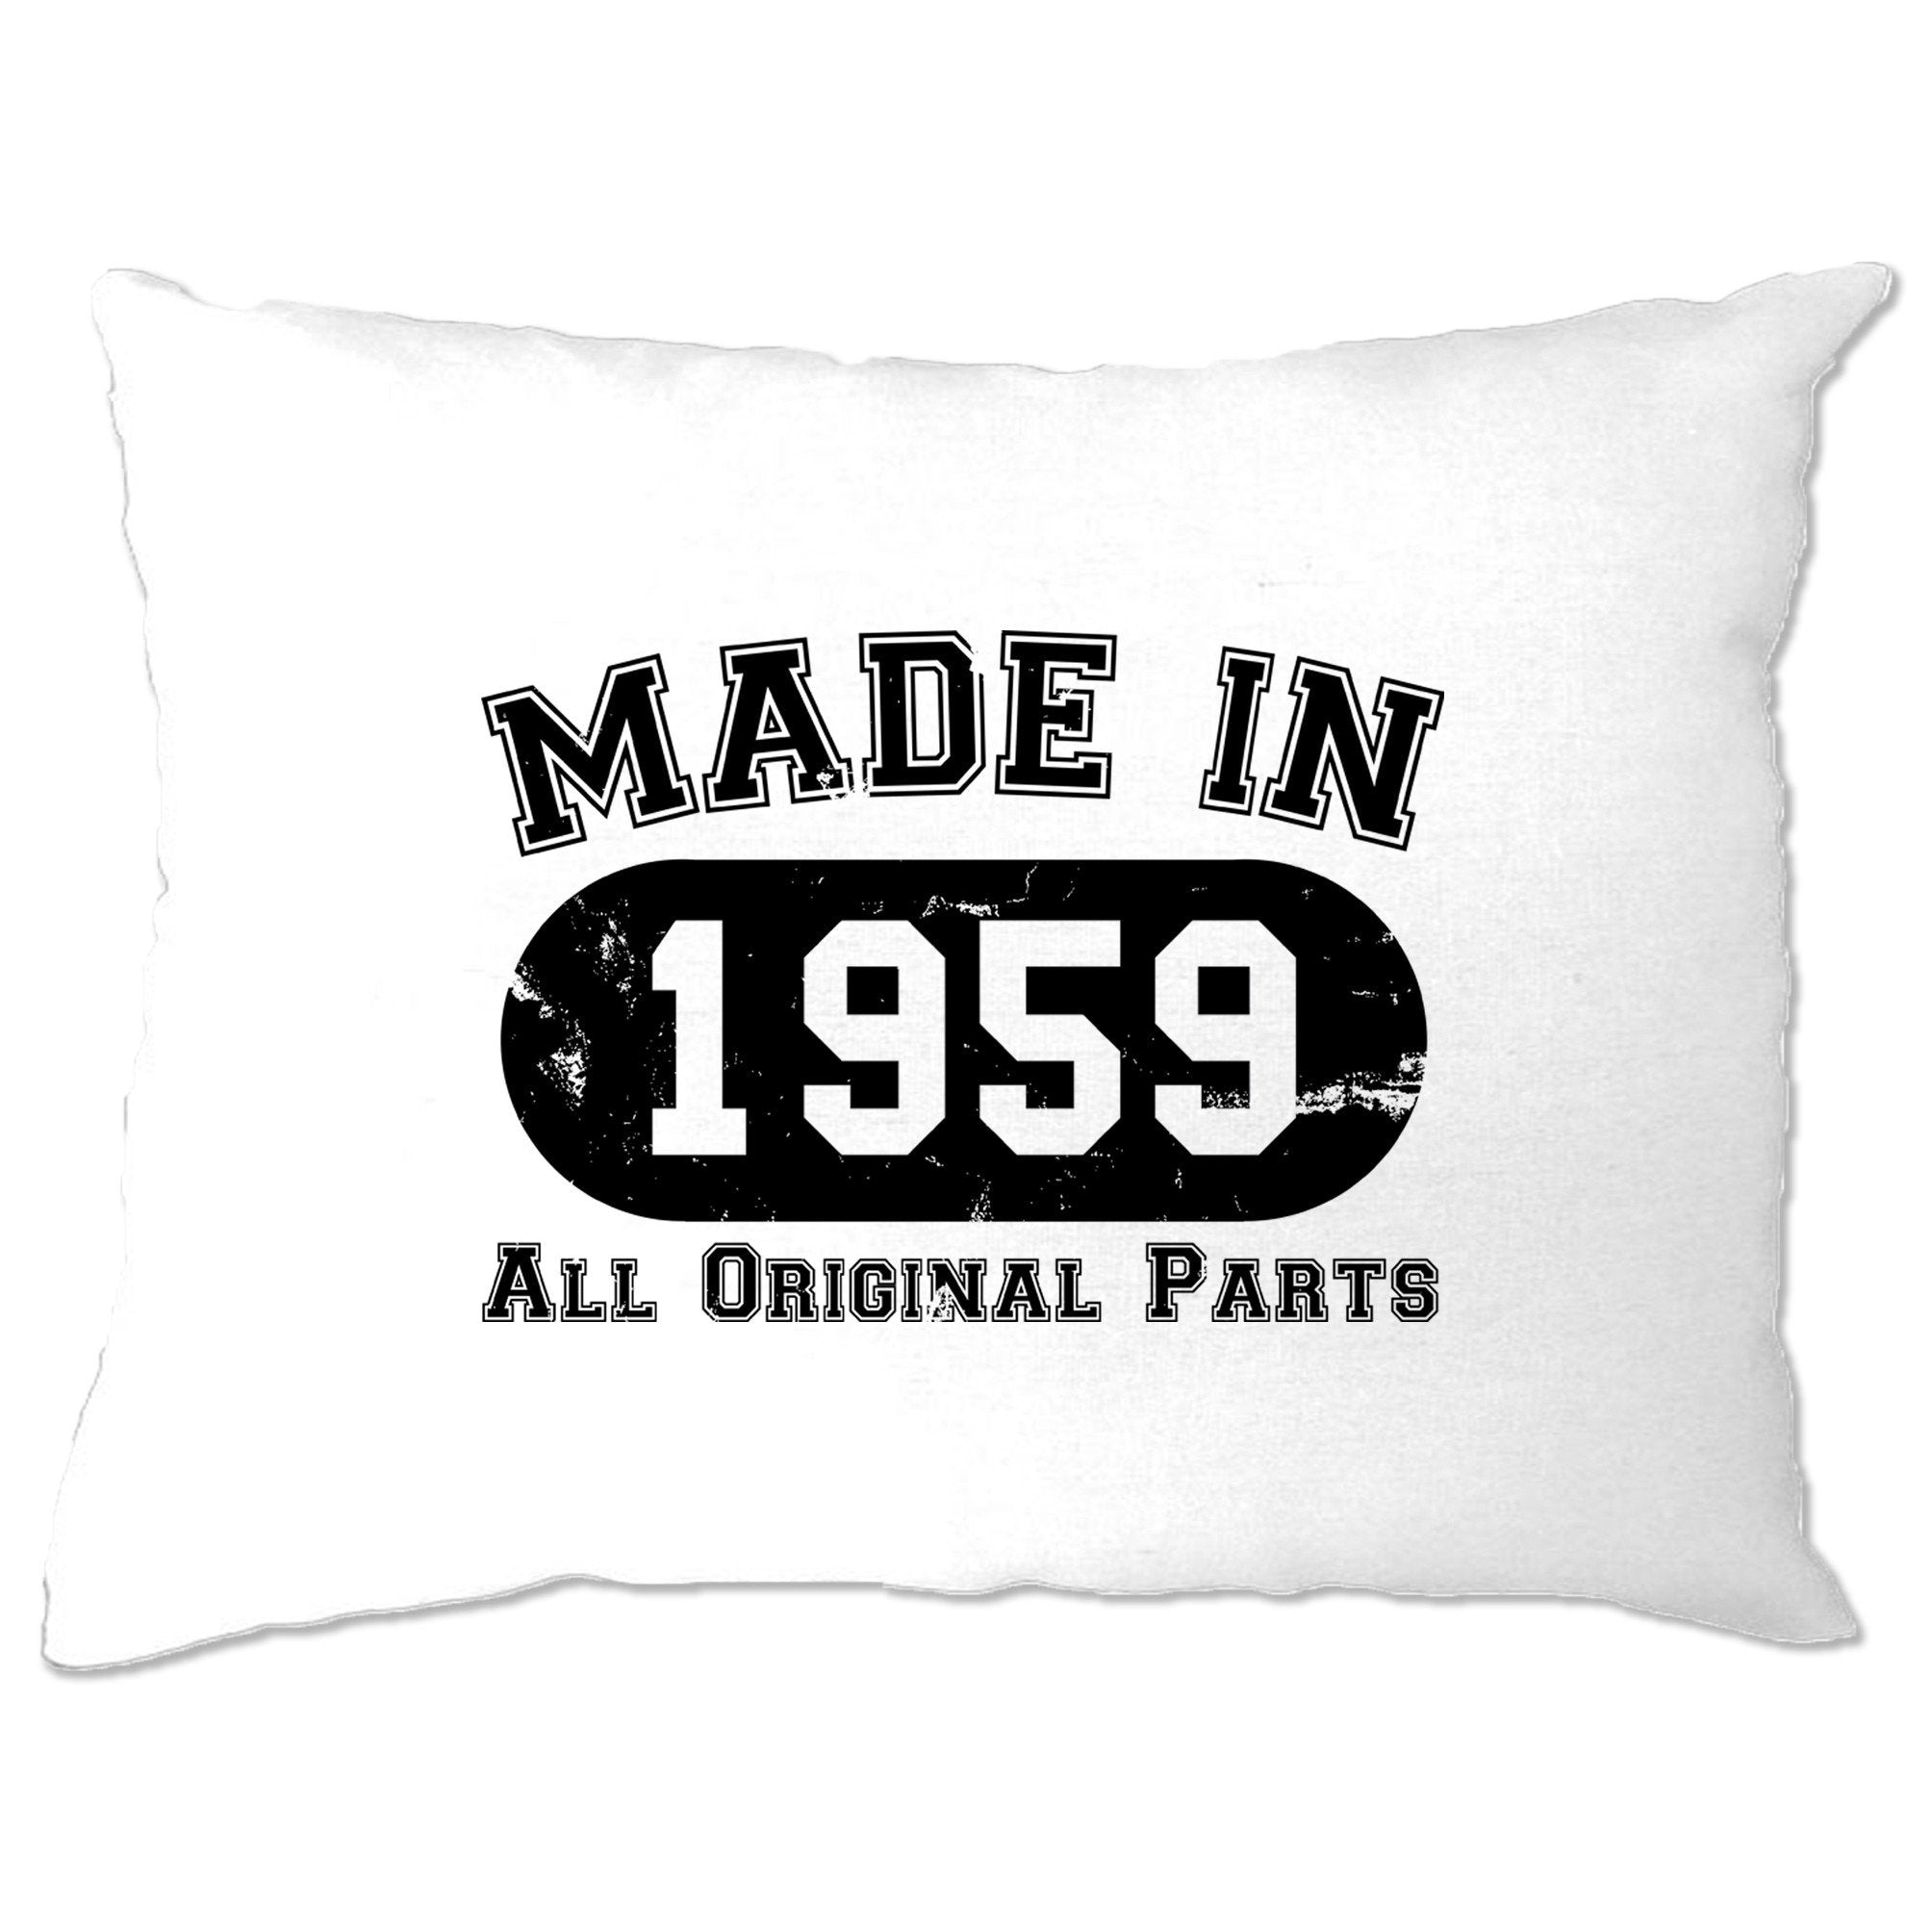 Made in 1959 All Original Parts Pillow Case [Distressed]